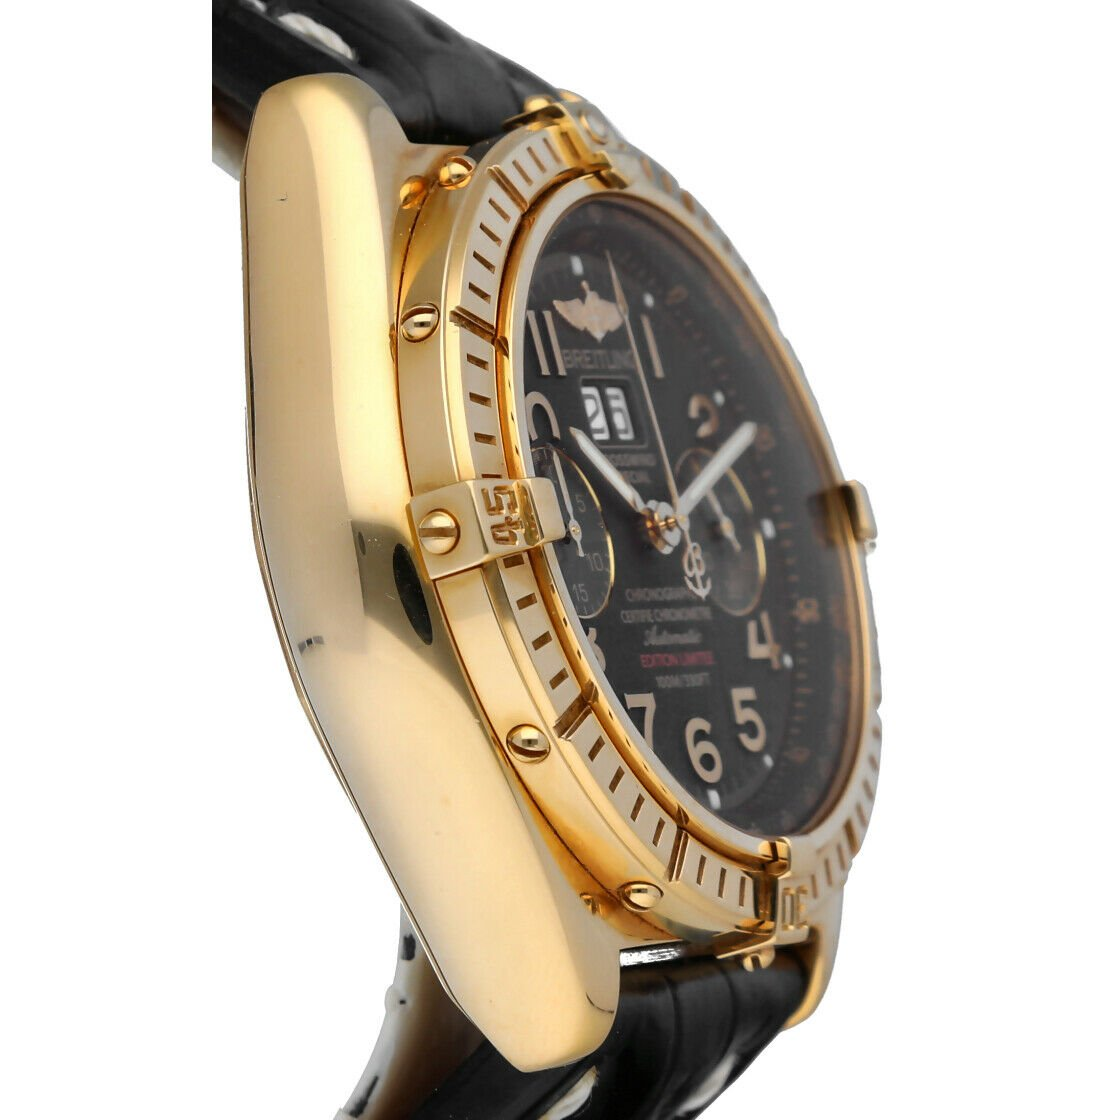 Breitling K44356 Crosswind 18k Yellow Gold Limited Edition Automatic Mens Watch 133527984163 4